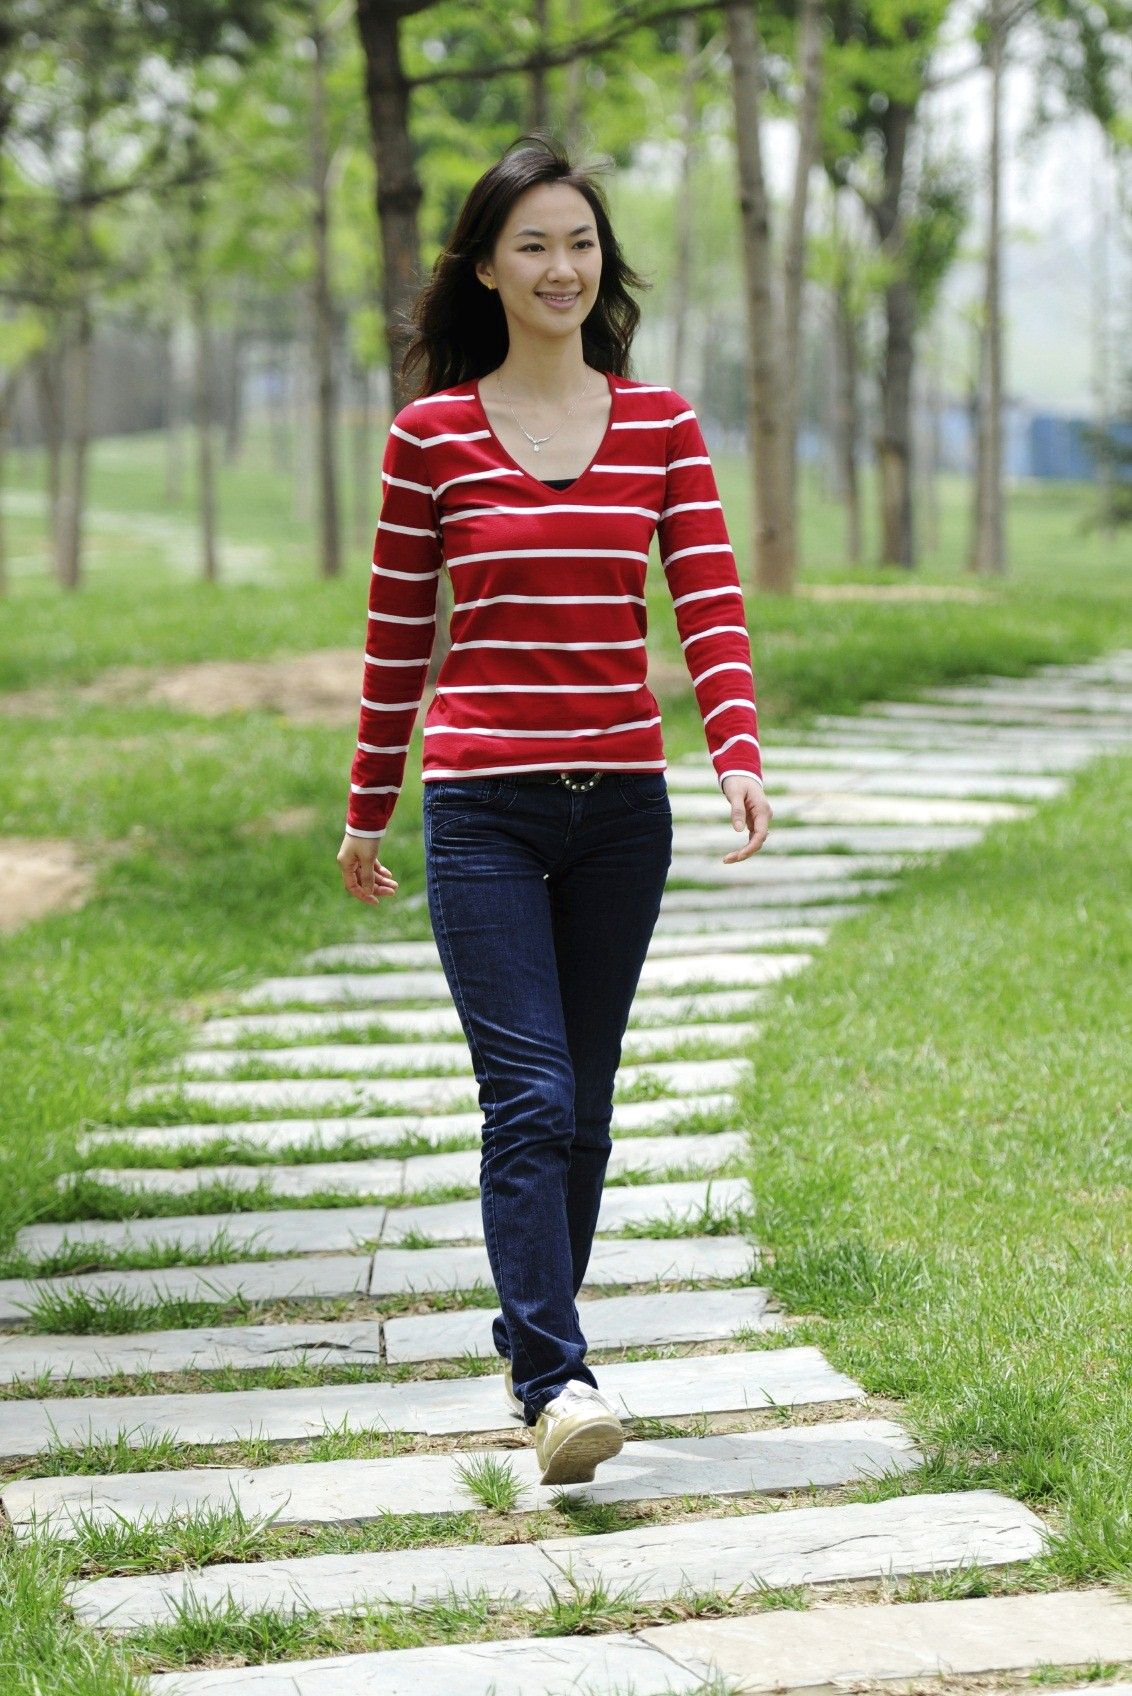 Woman-walking-3